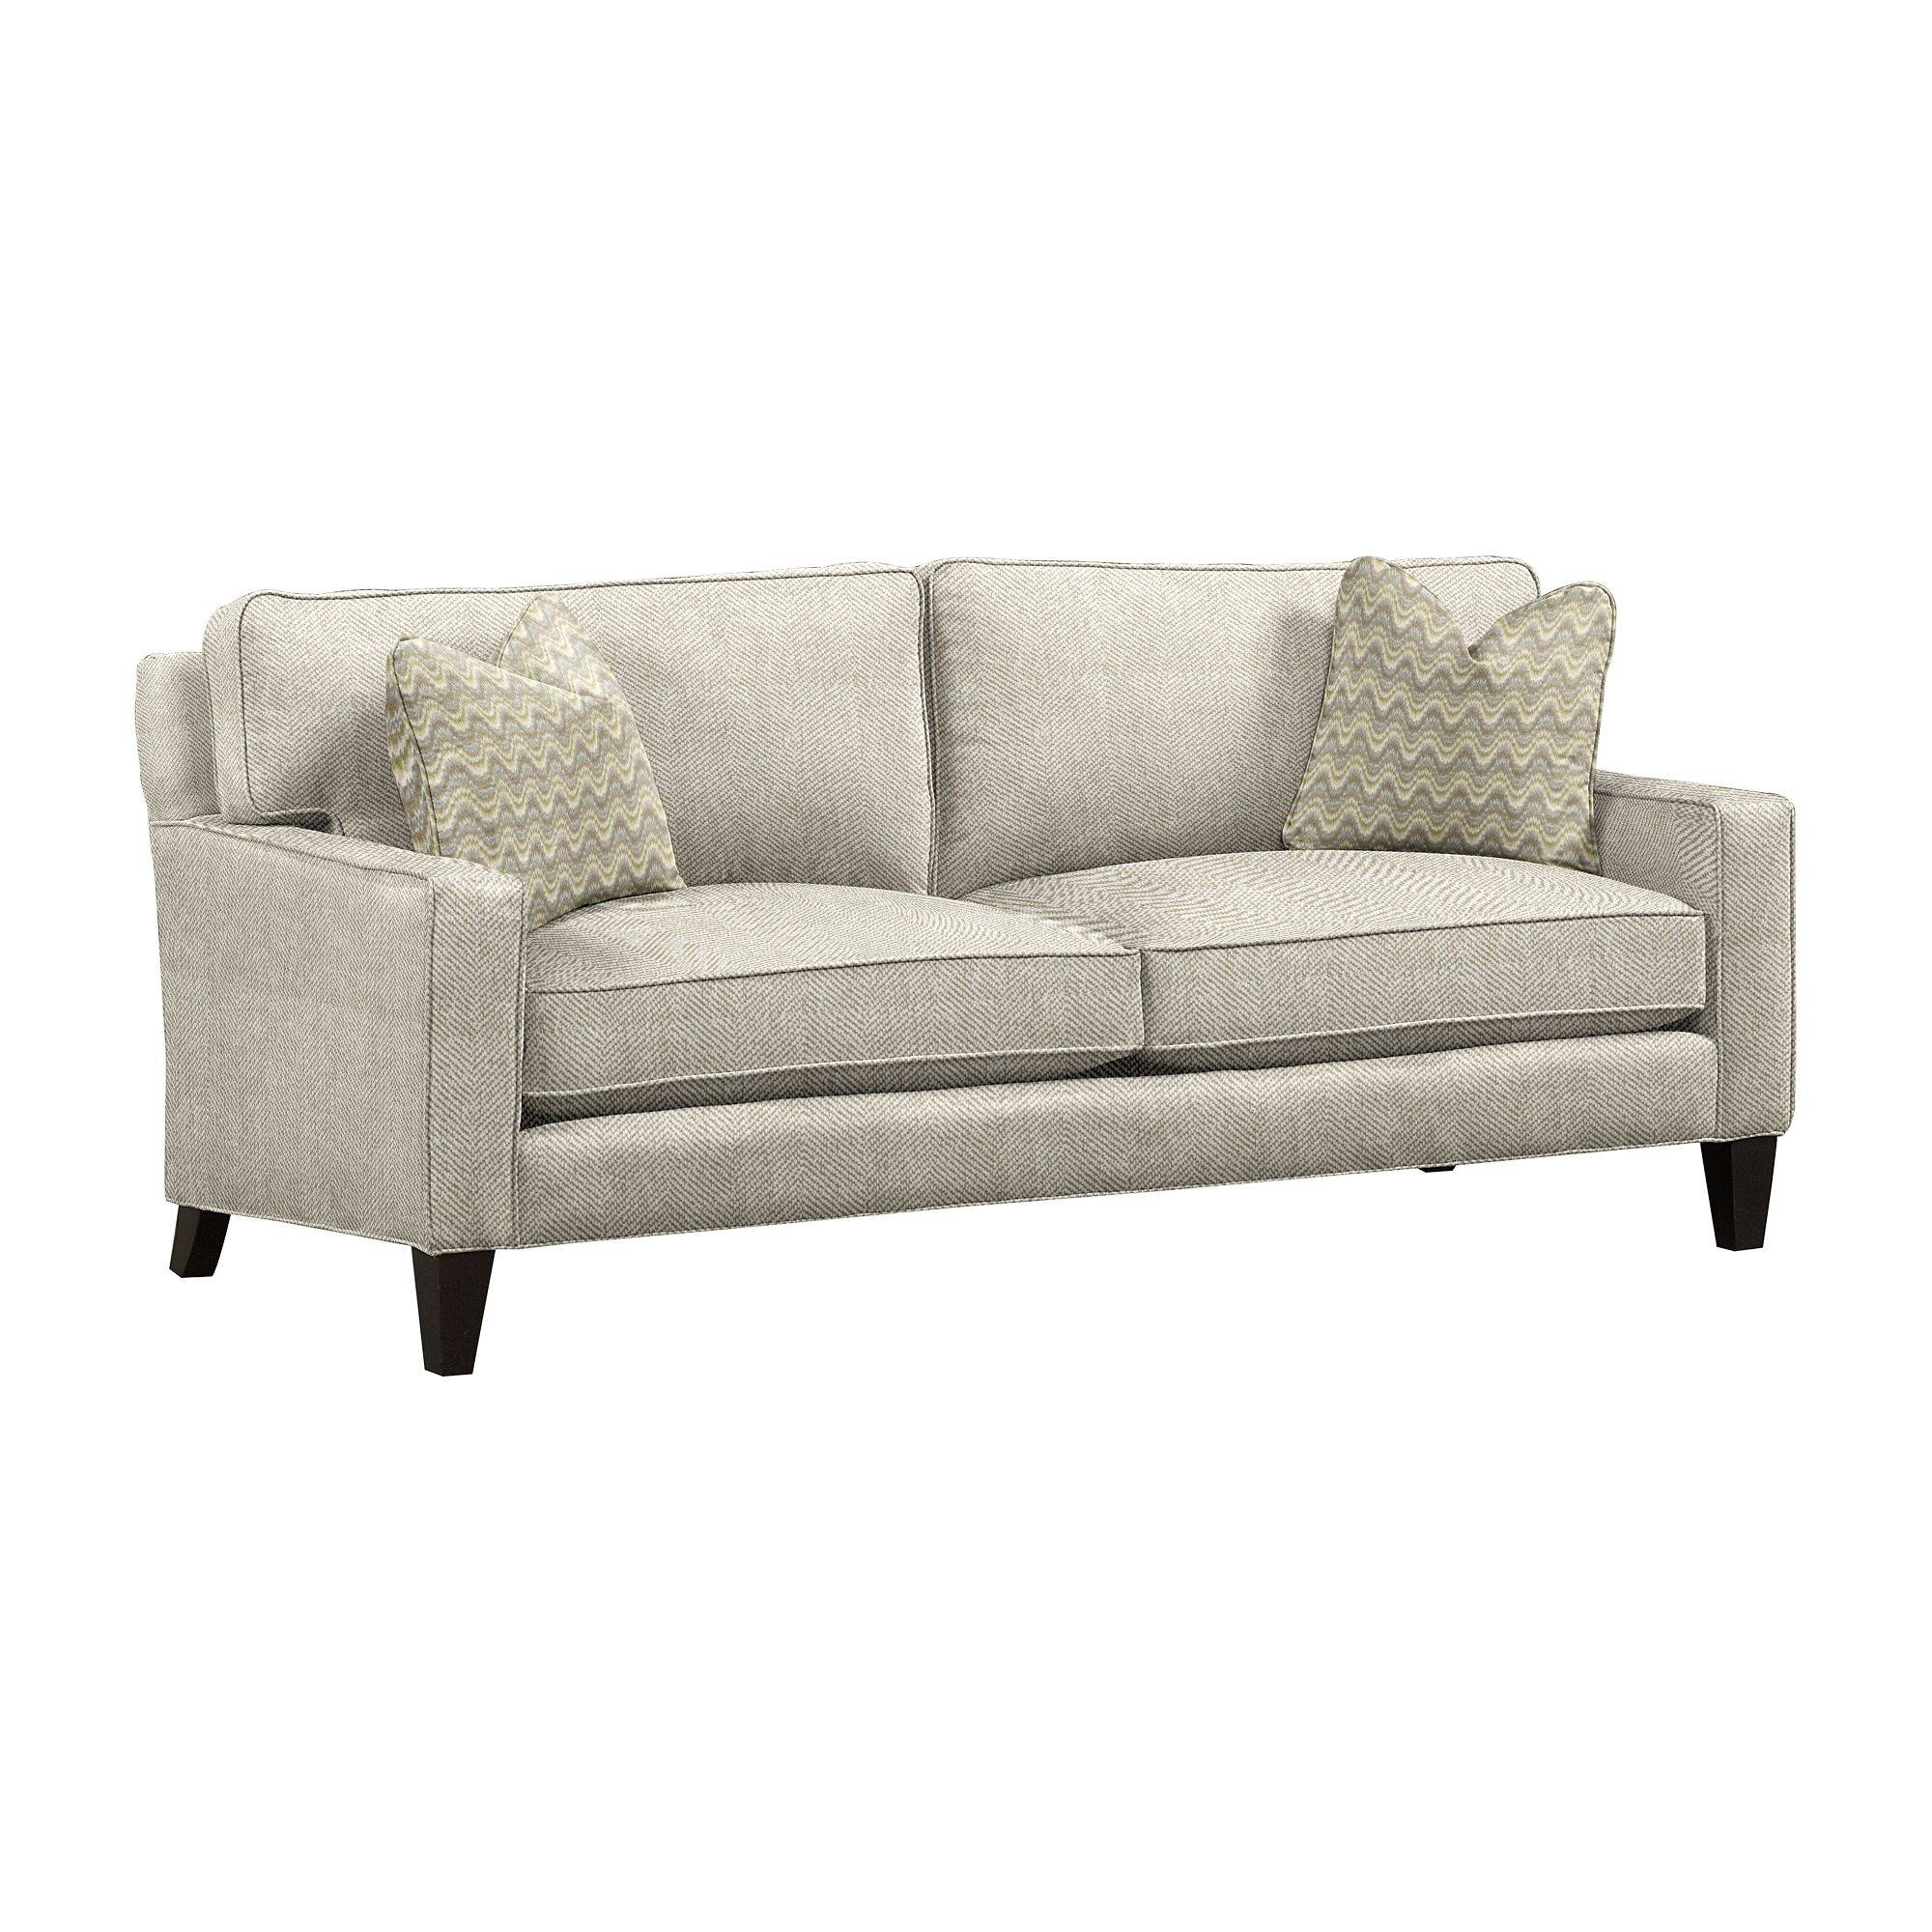 Havertys Sofas | Best Home Furniture Decoration For Havertys Amalfi Sofas (View 6 of 15)